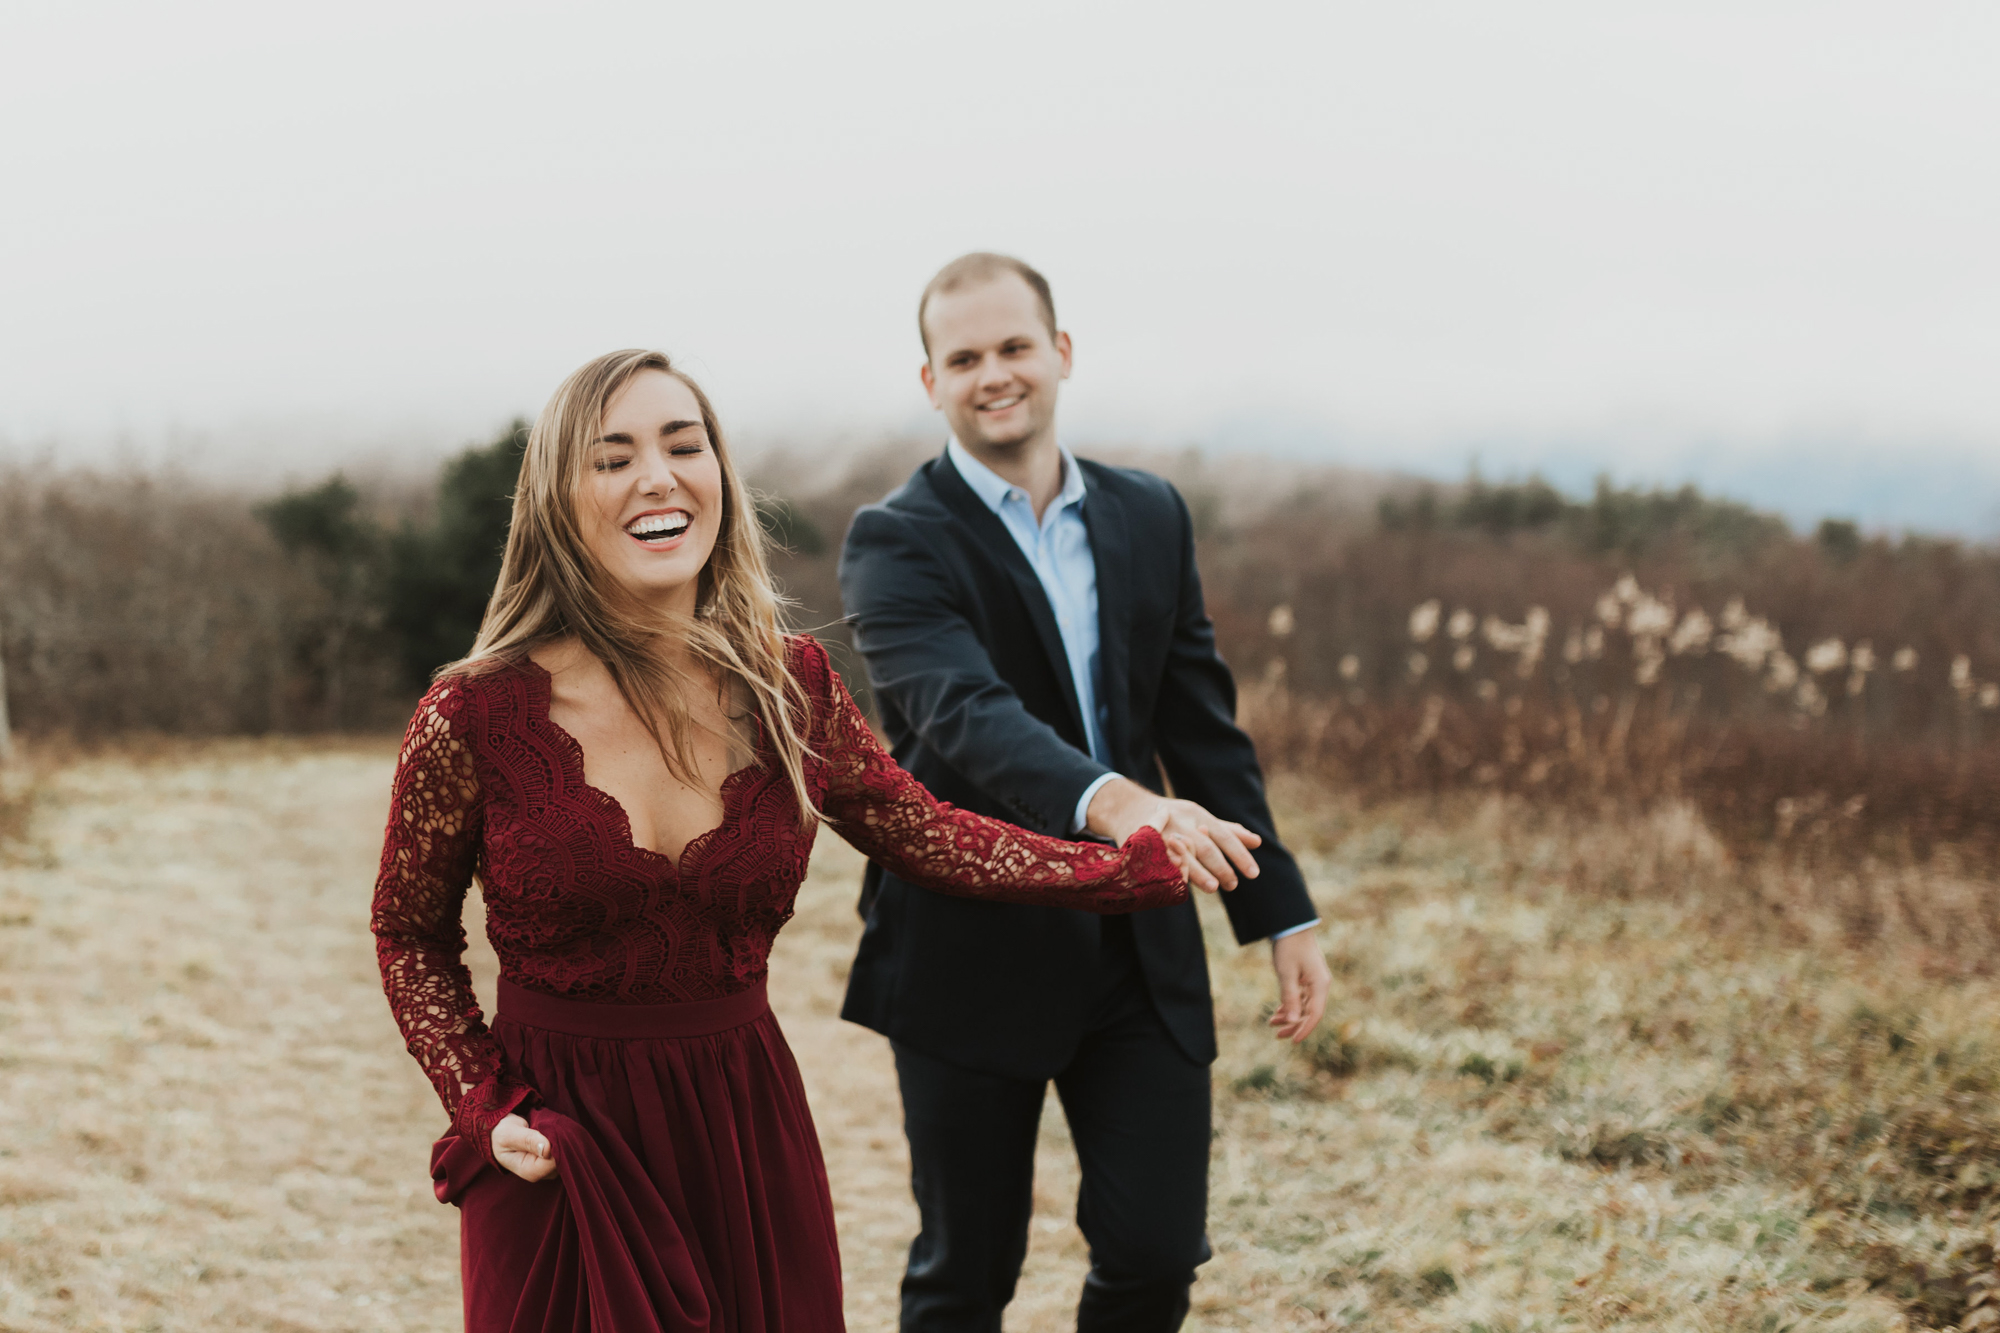 TennesseeMountain_EngagementPhotos_JohnsonCity_Couple_NashvilleWedding_EastTennessee_MollyPEachPhotography-3783.jpg